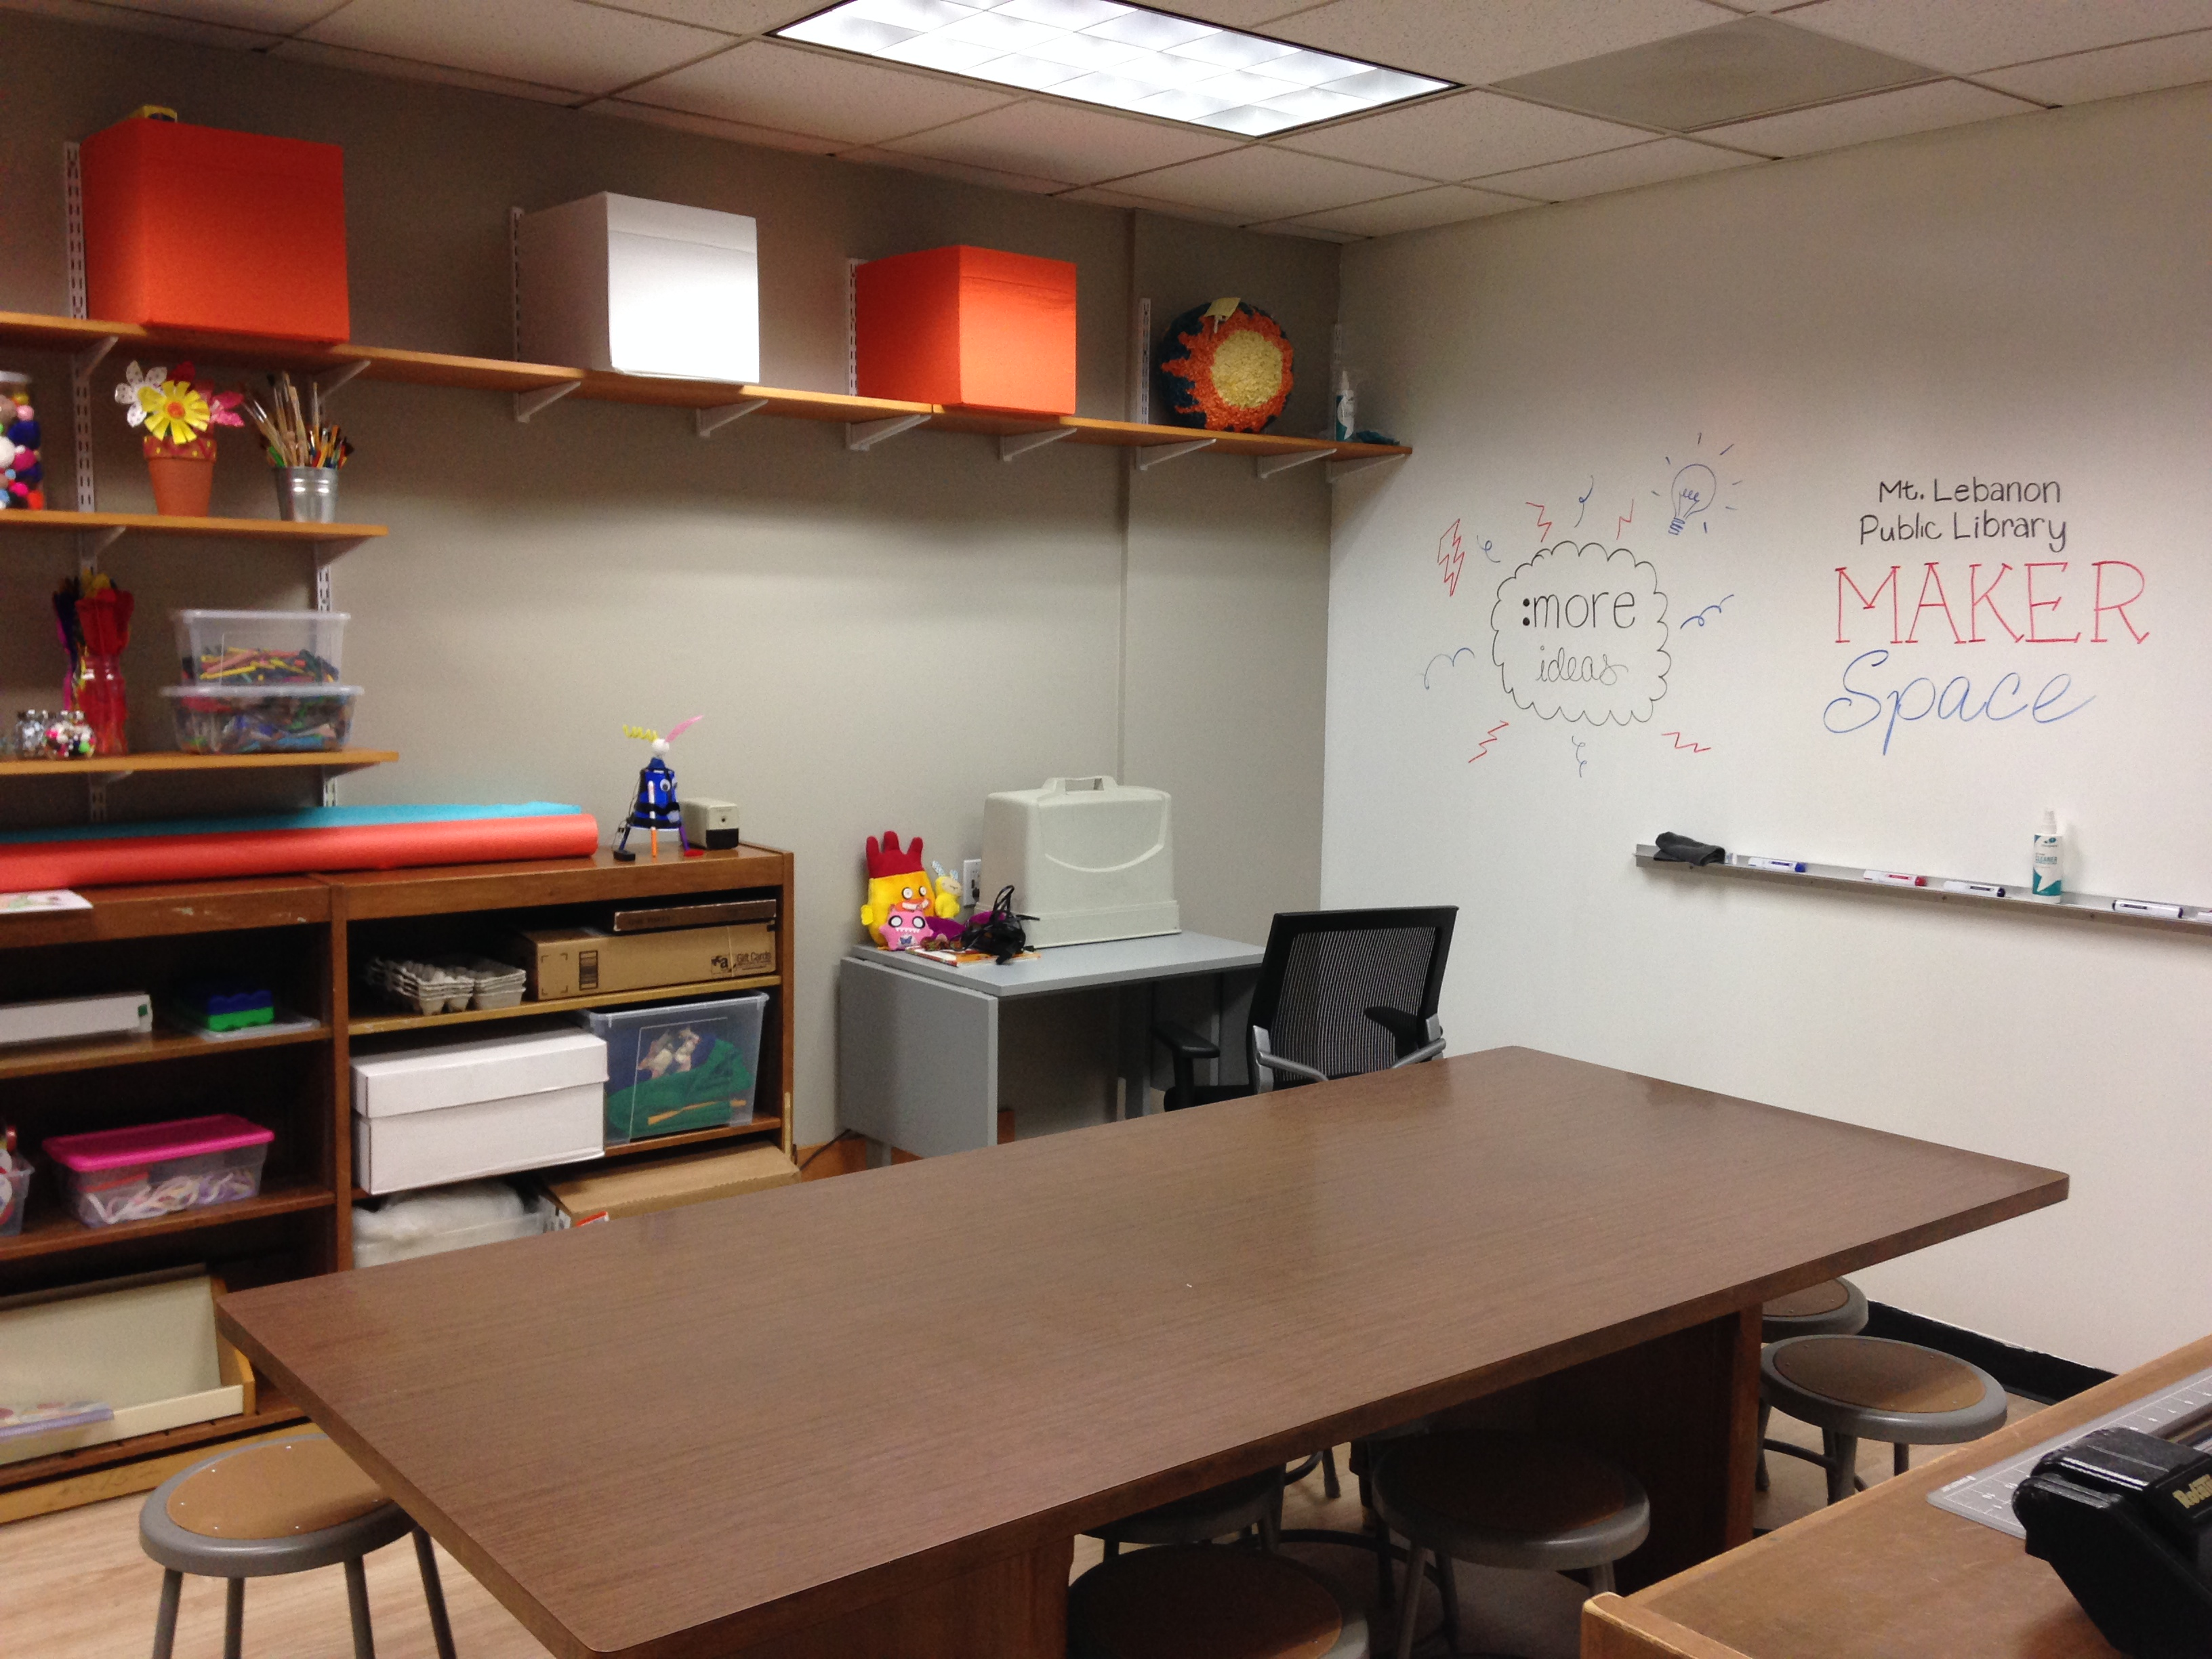 Maker Space Project Area